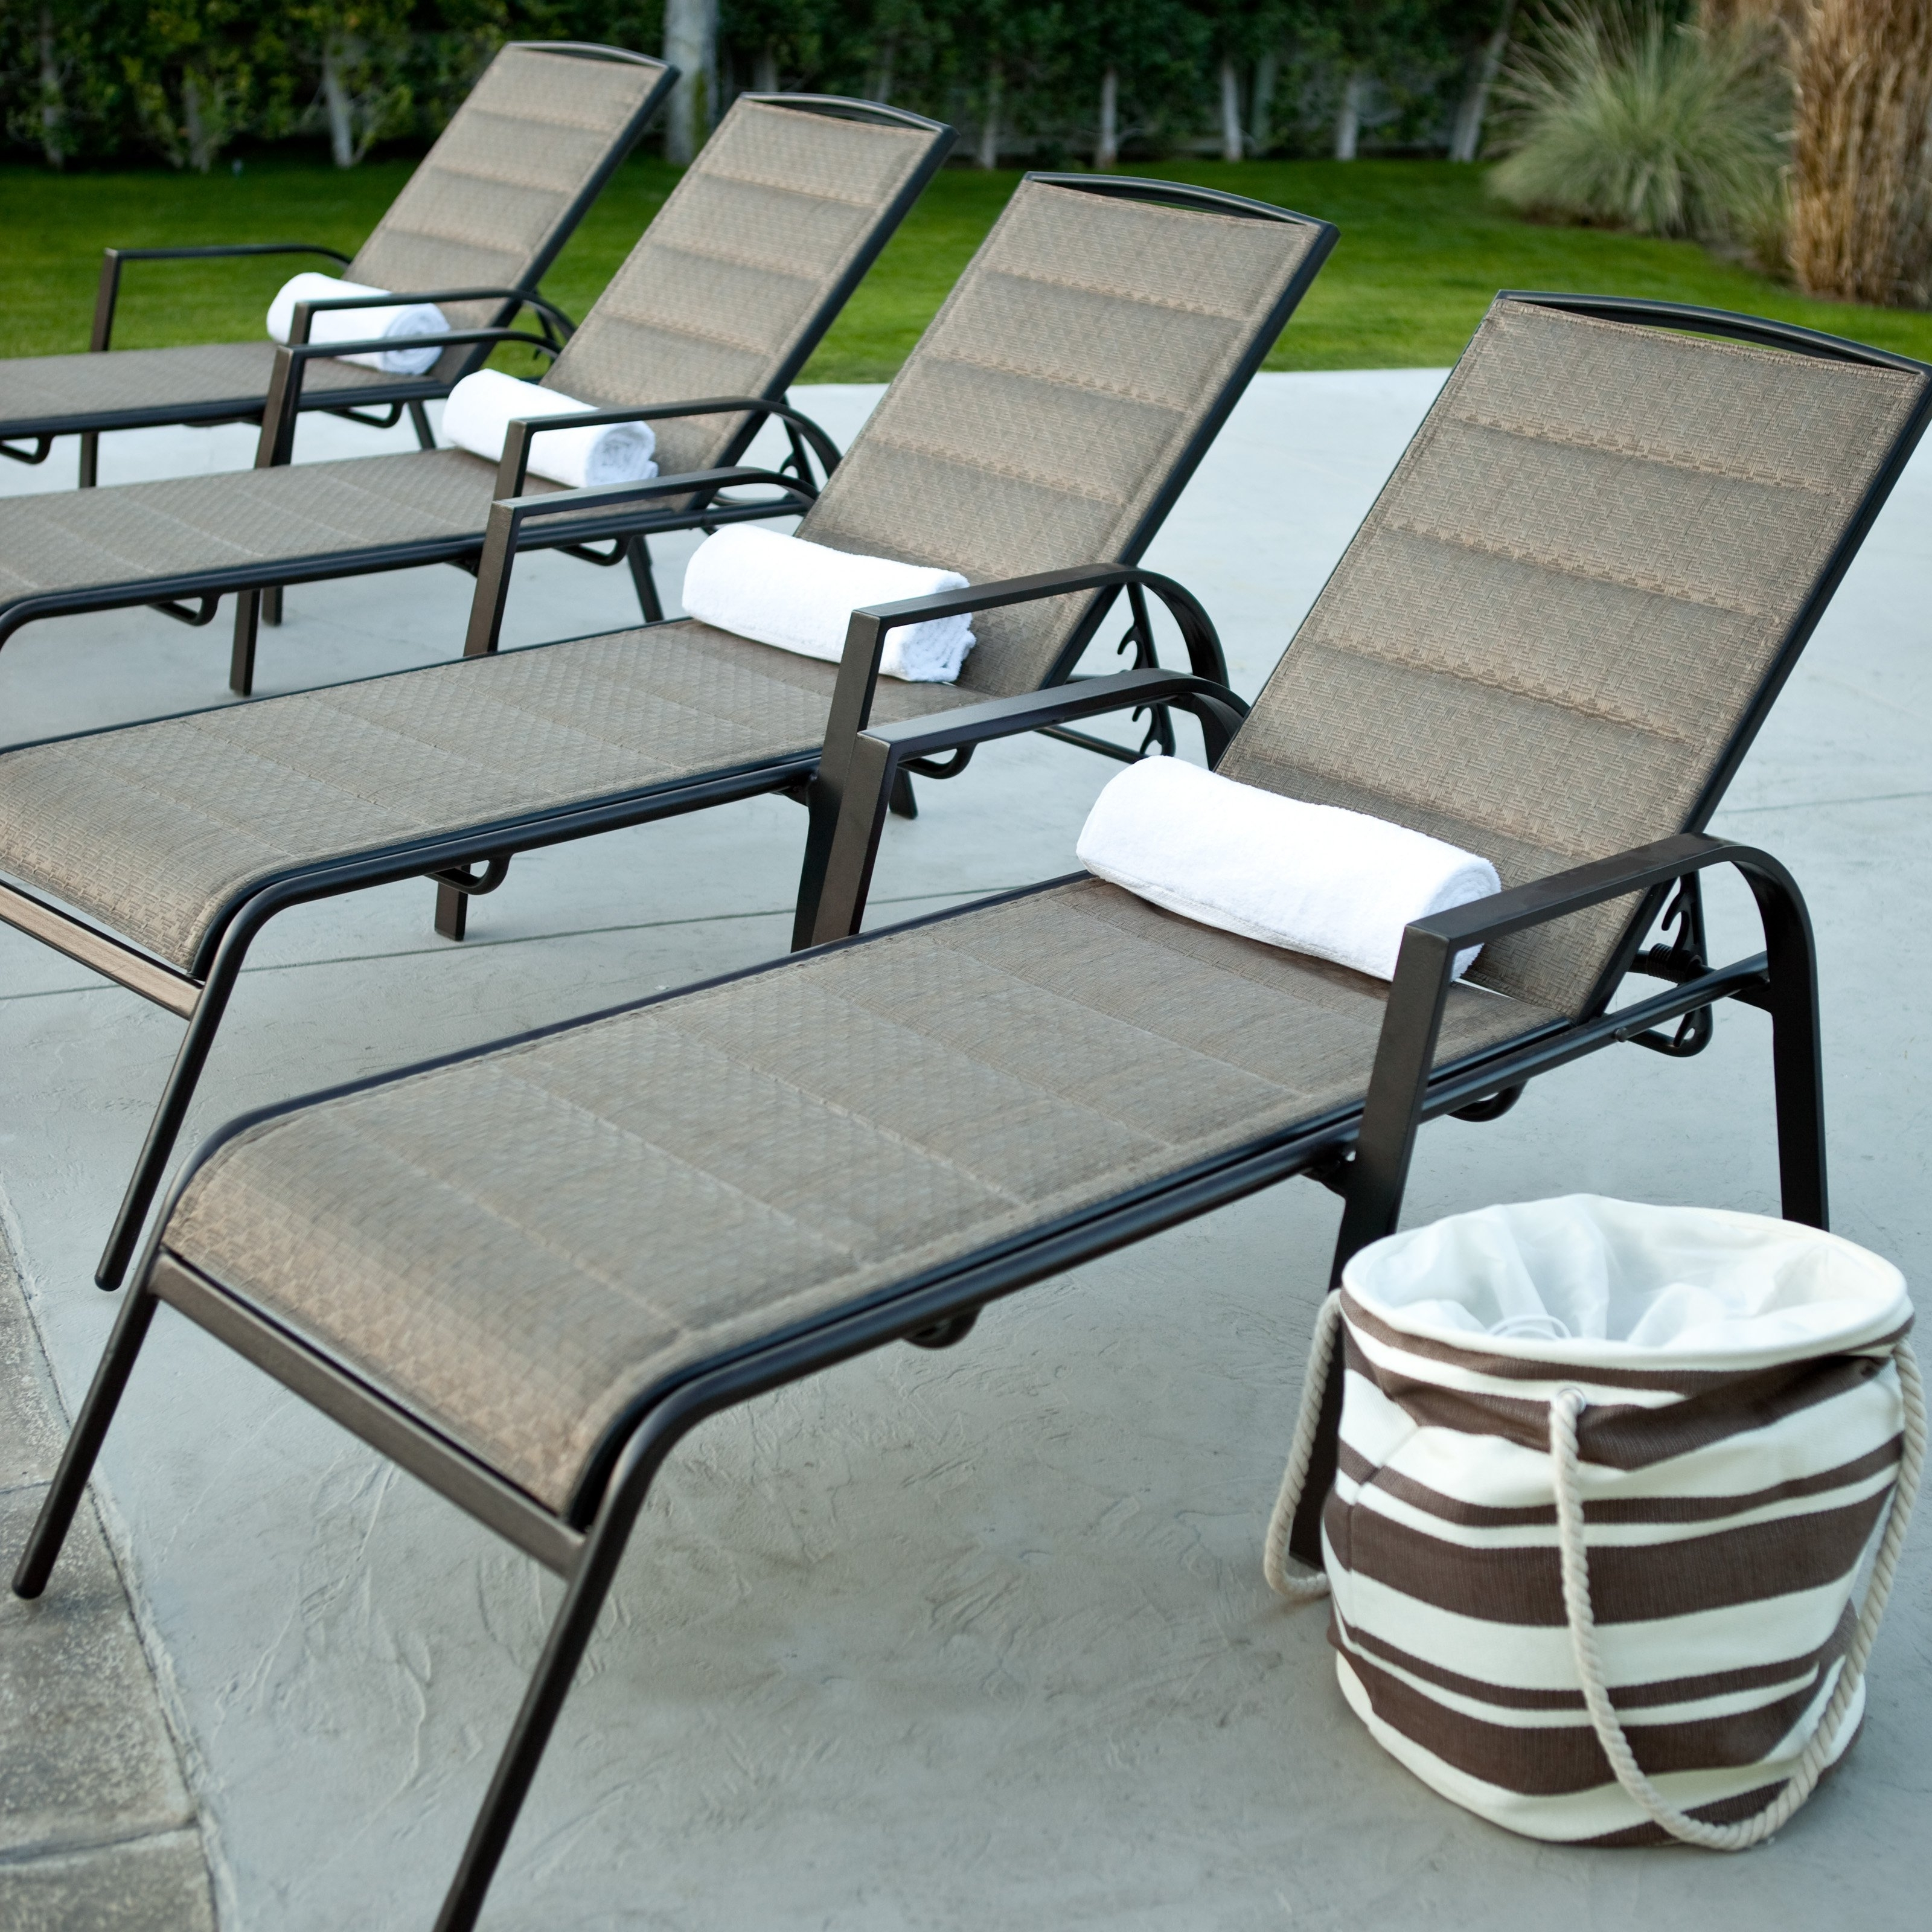 Favorite Furniture : Cozy Aluminum Outdoor Aluminum Furniture With Black For Black Chaise Lounge Outdoor Chairs (View 6 of 15)